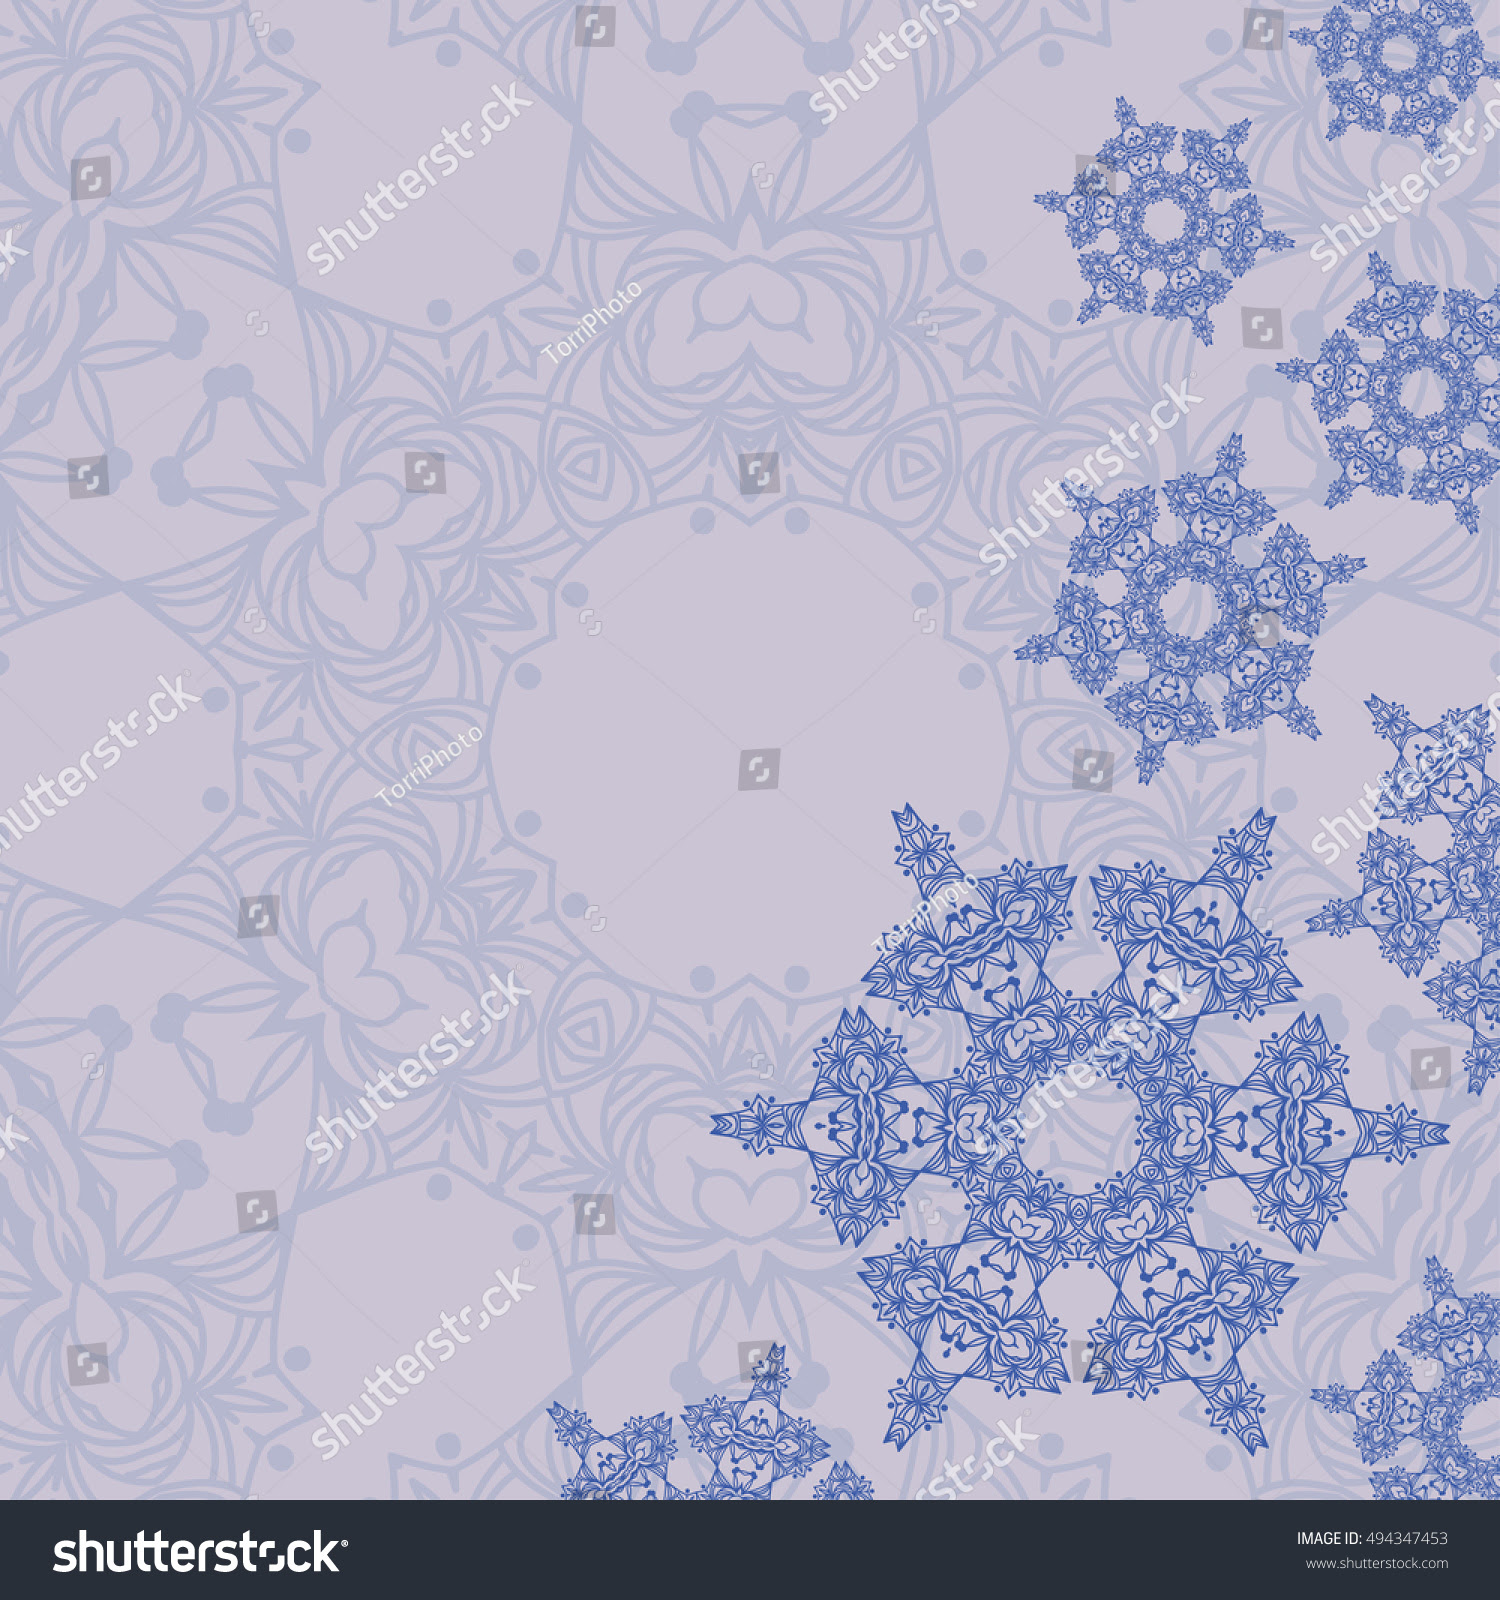 http://www.shutterstock.com/pic-494347453/stock-vector-blue-background-with-abstract-arabesque-snowflakes-for-card-or-invitation-copy-space-vector-illustration-eps8.html